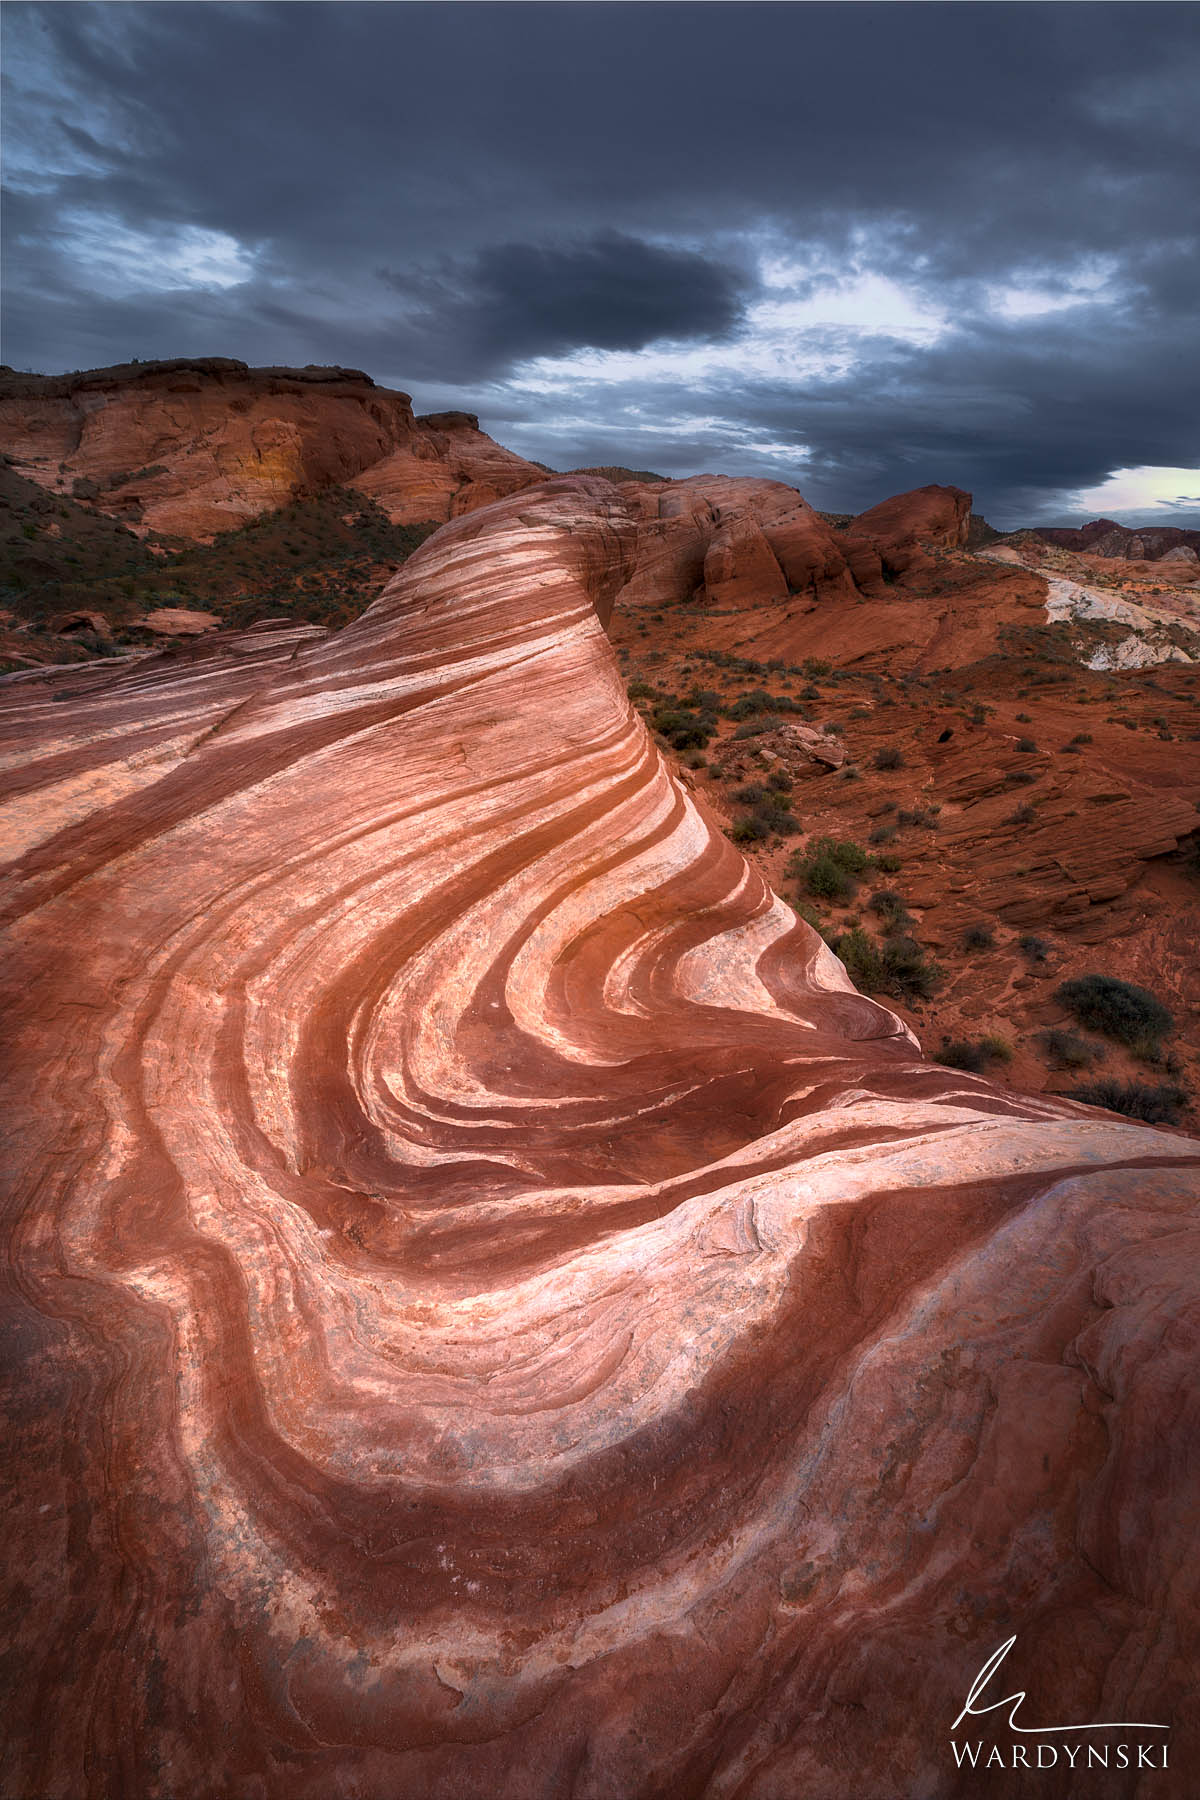 Fine Art Print | Limited Edition of 25  Sandstone swirls create wonderful leading lines in Valley of Fire, Nevada. This odd formation...